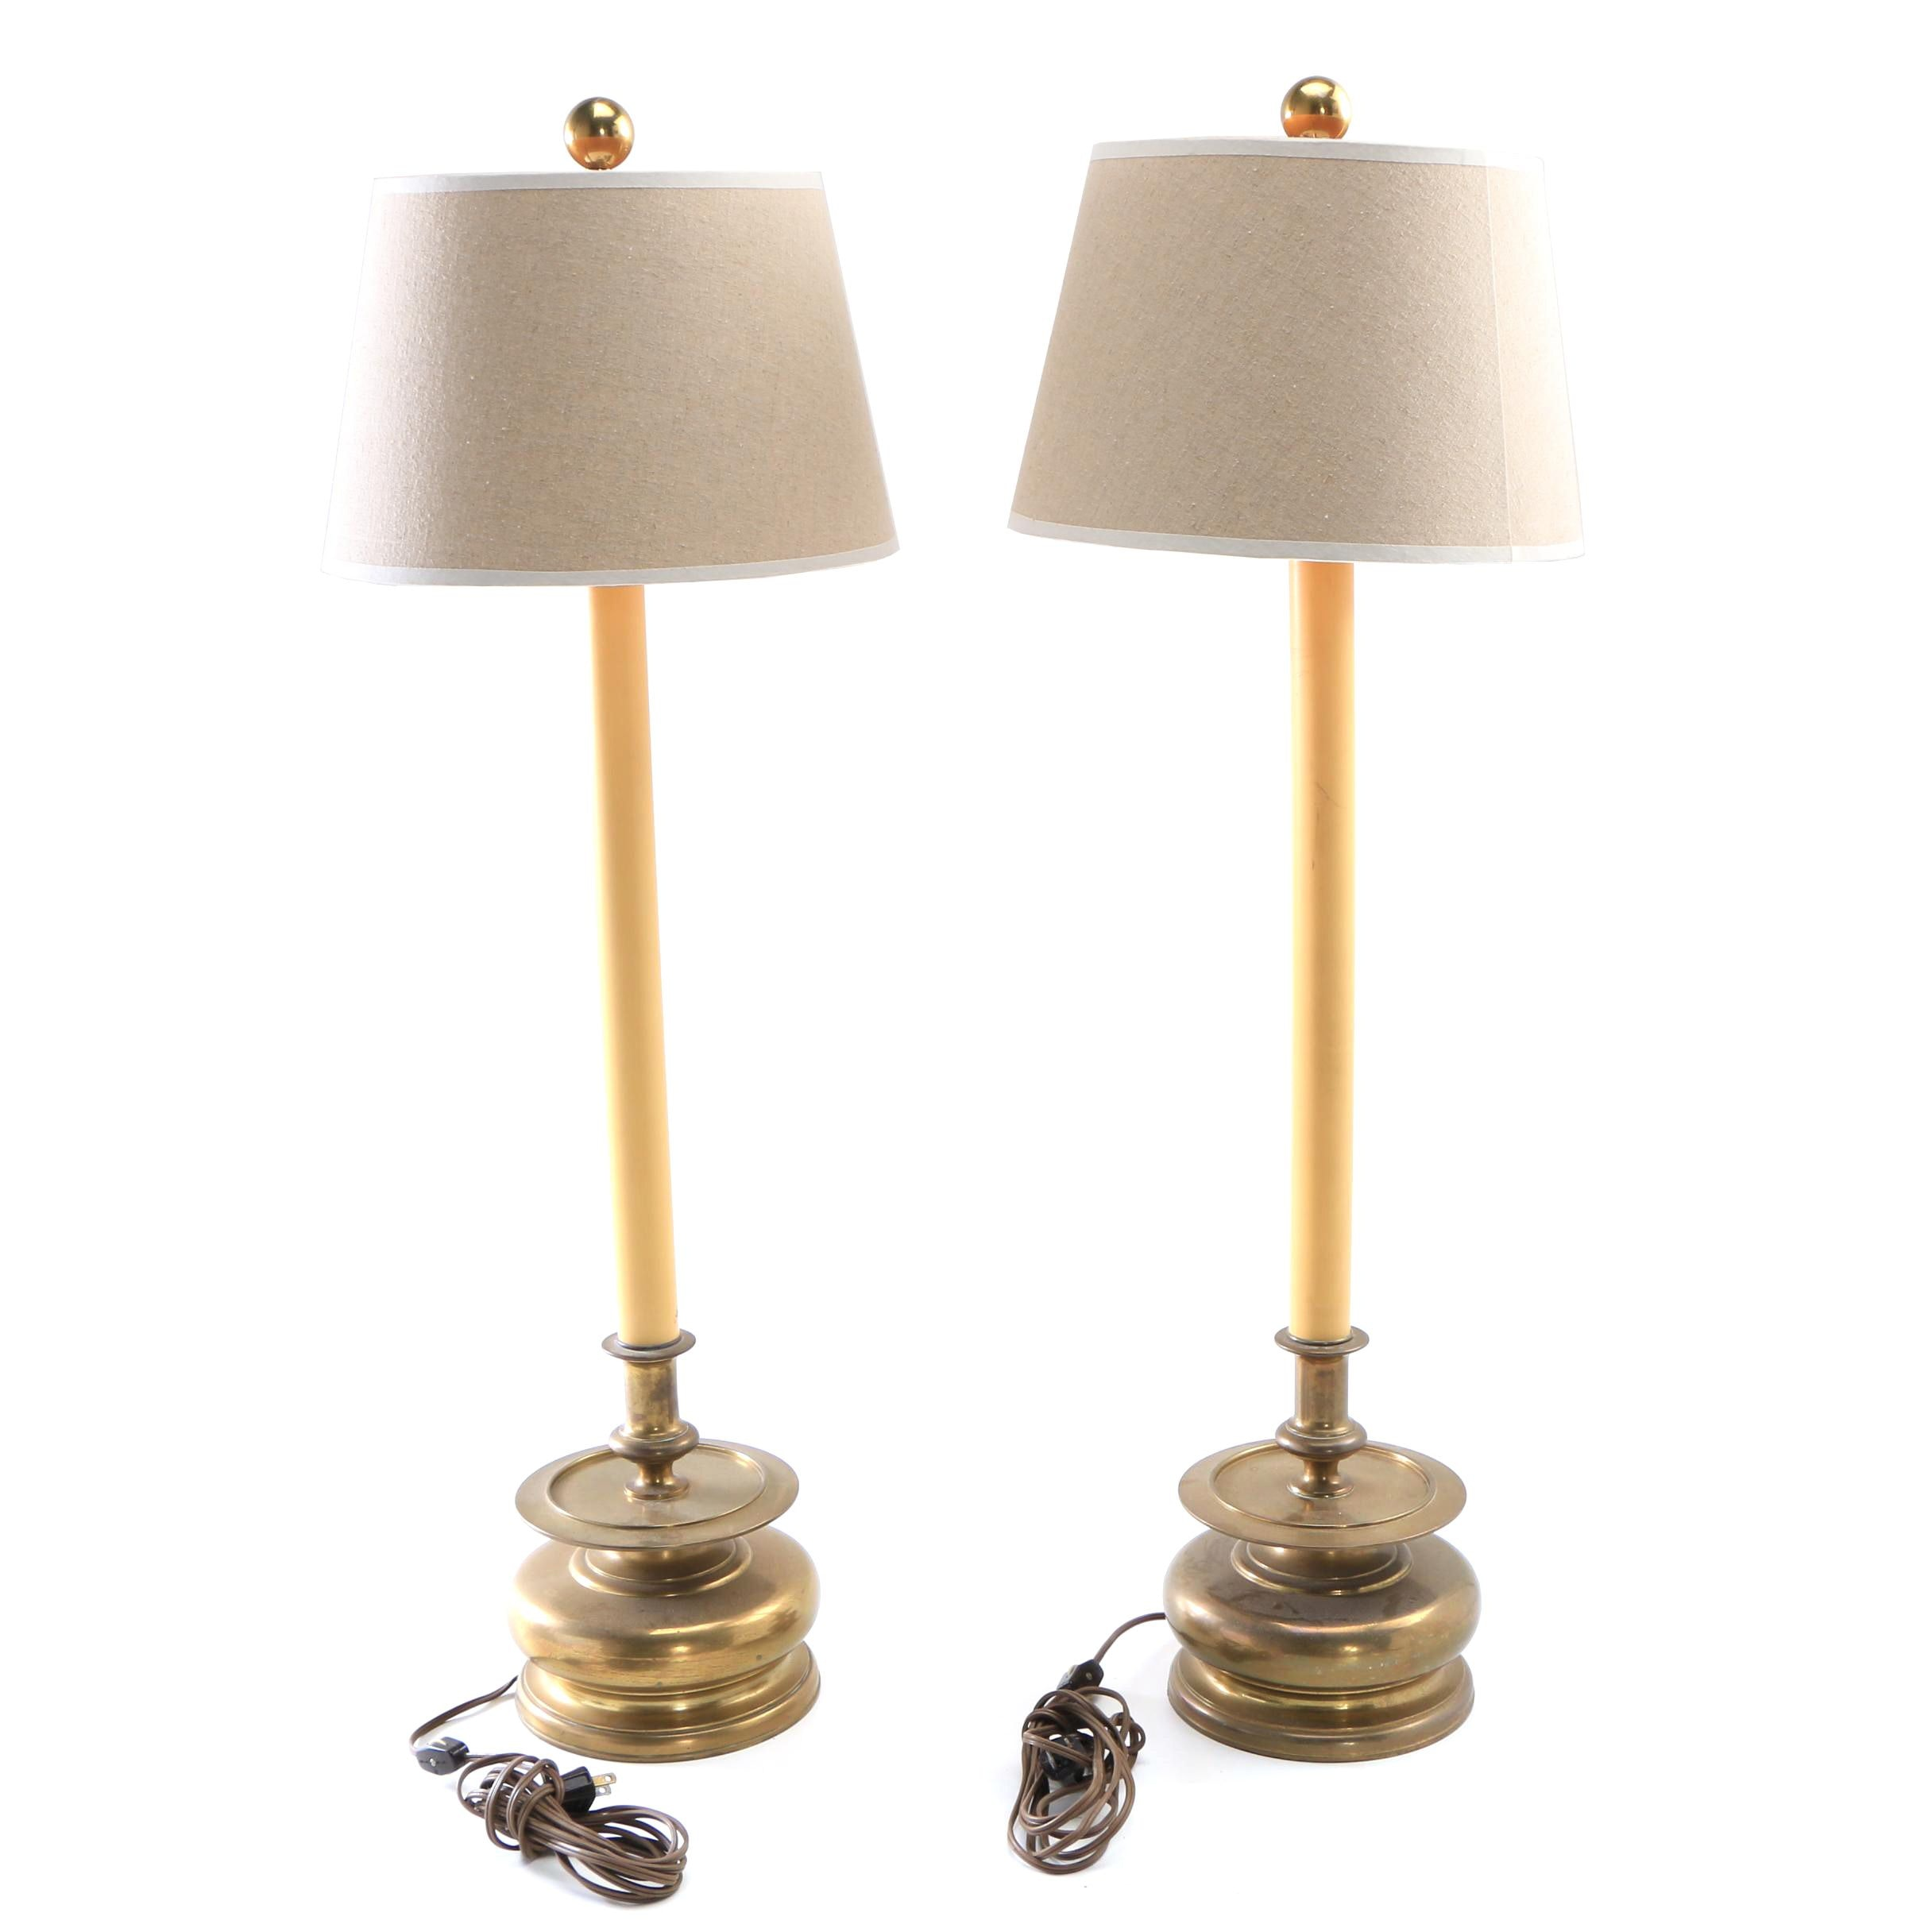 Vintage Chapman Candlestick Style Buffet Lamps with Fabric Shades